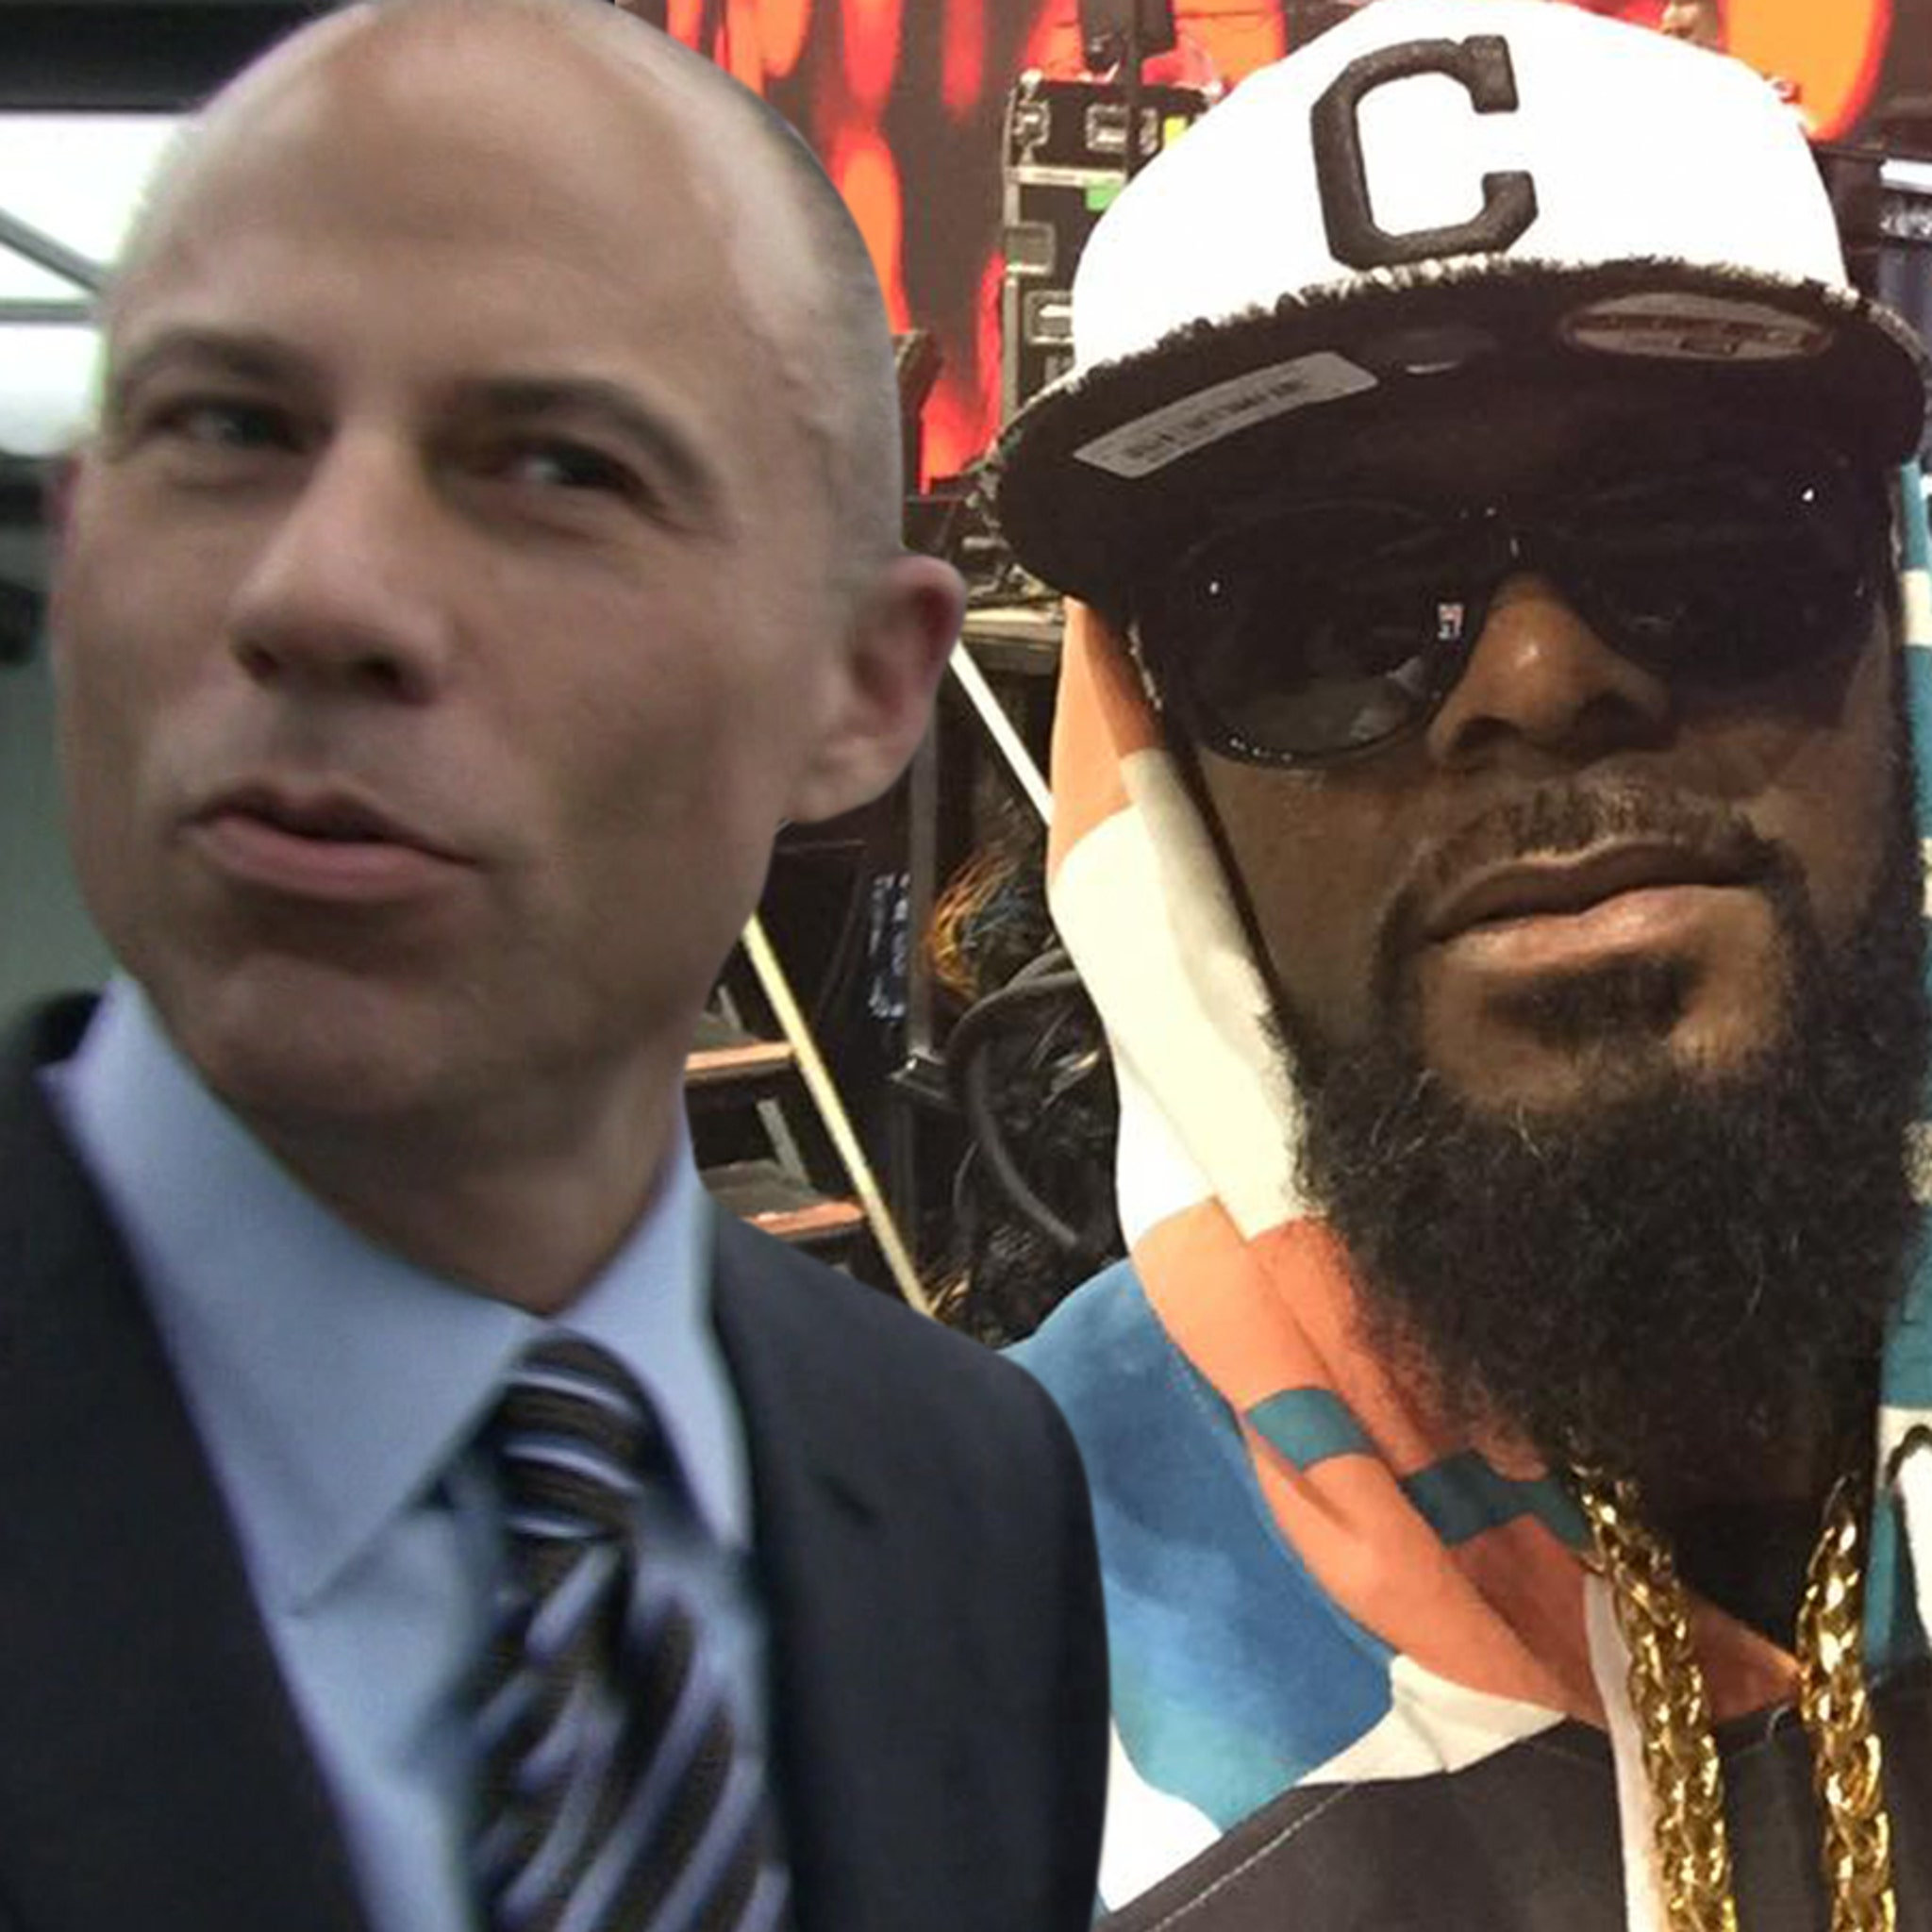 Michael Avenatti S Indictment Casts Shadow In R Kelly Case